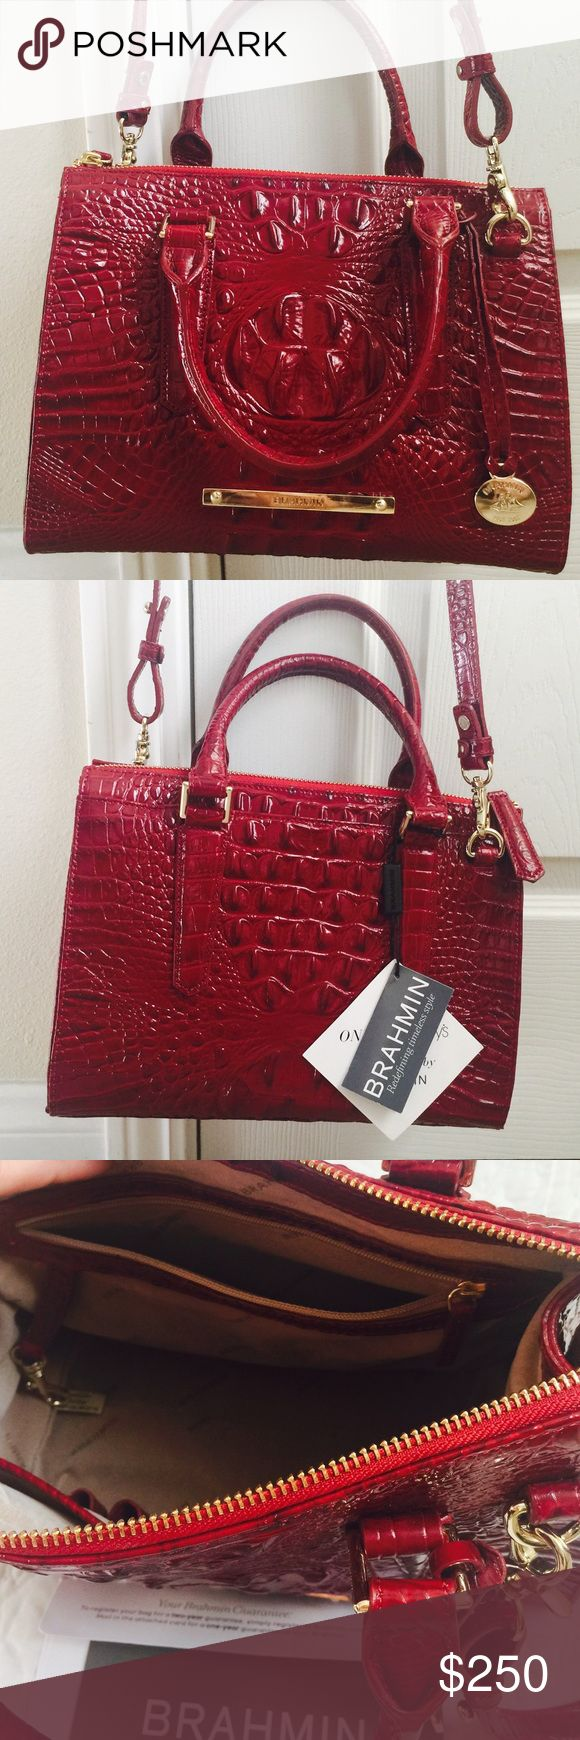 Brahmin Anywhere medium satchel Brand new with tag. Color: carmine red.               10L x 8H x 5D. No trades  Brahmin Bags Satchels